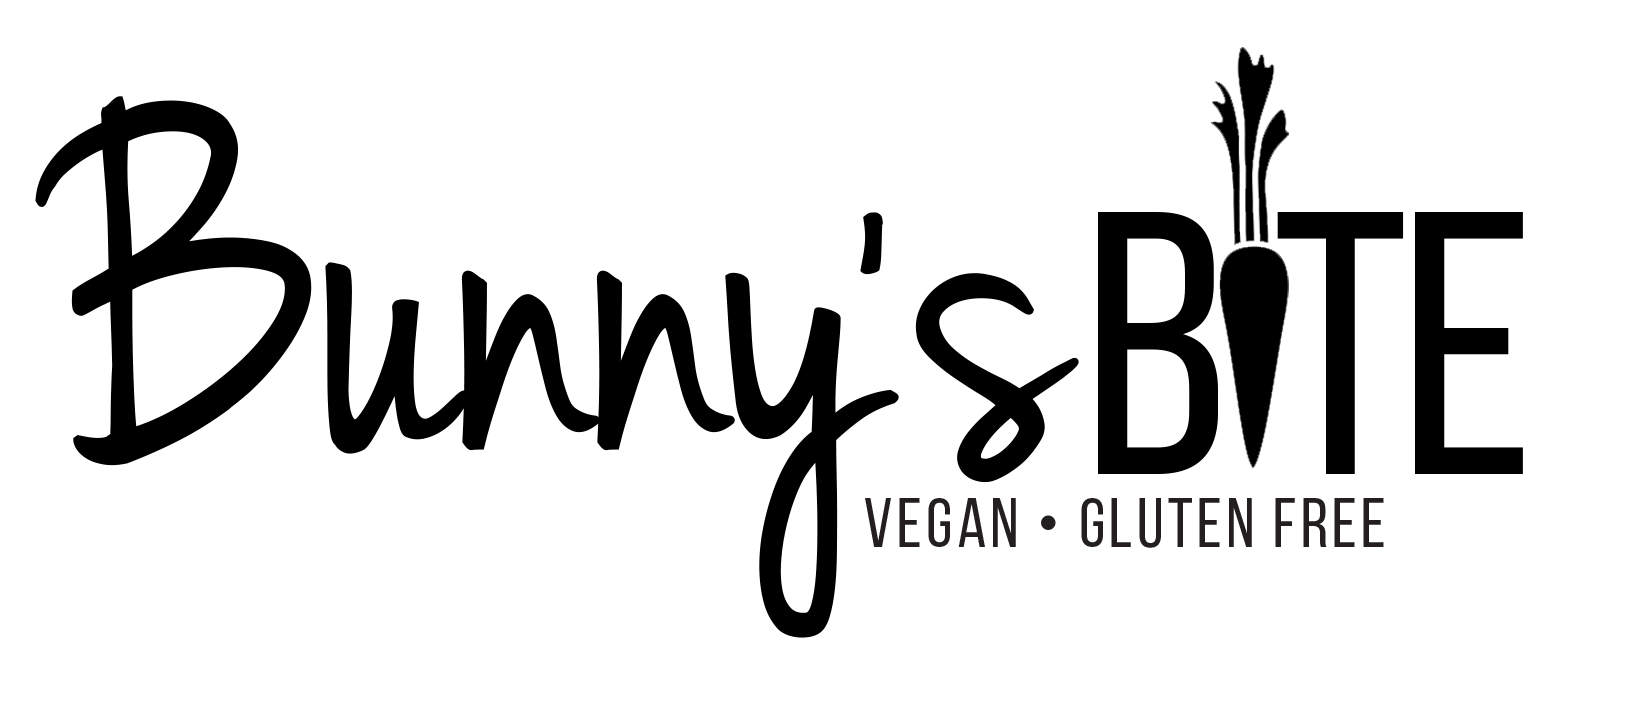 Delicious Vegan and Gluten Free Recipes